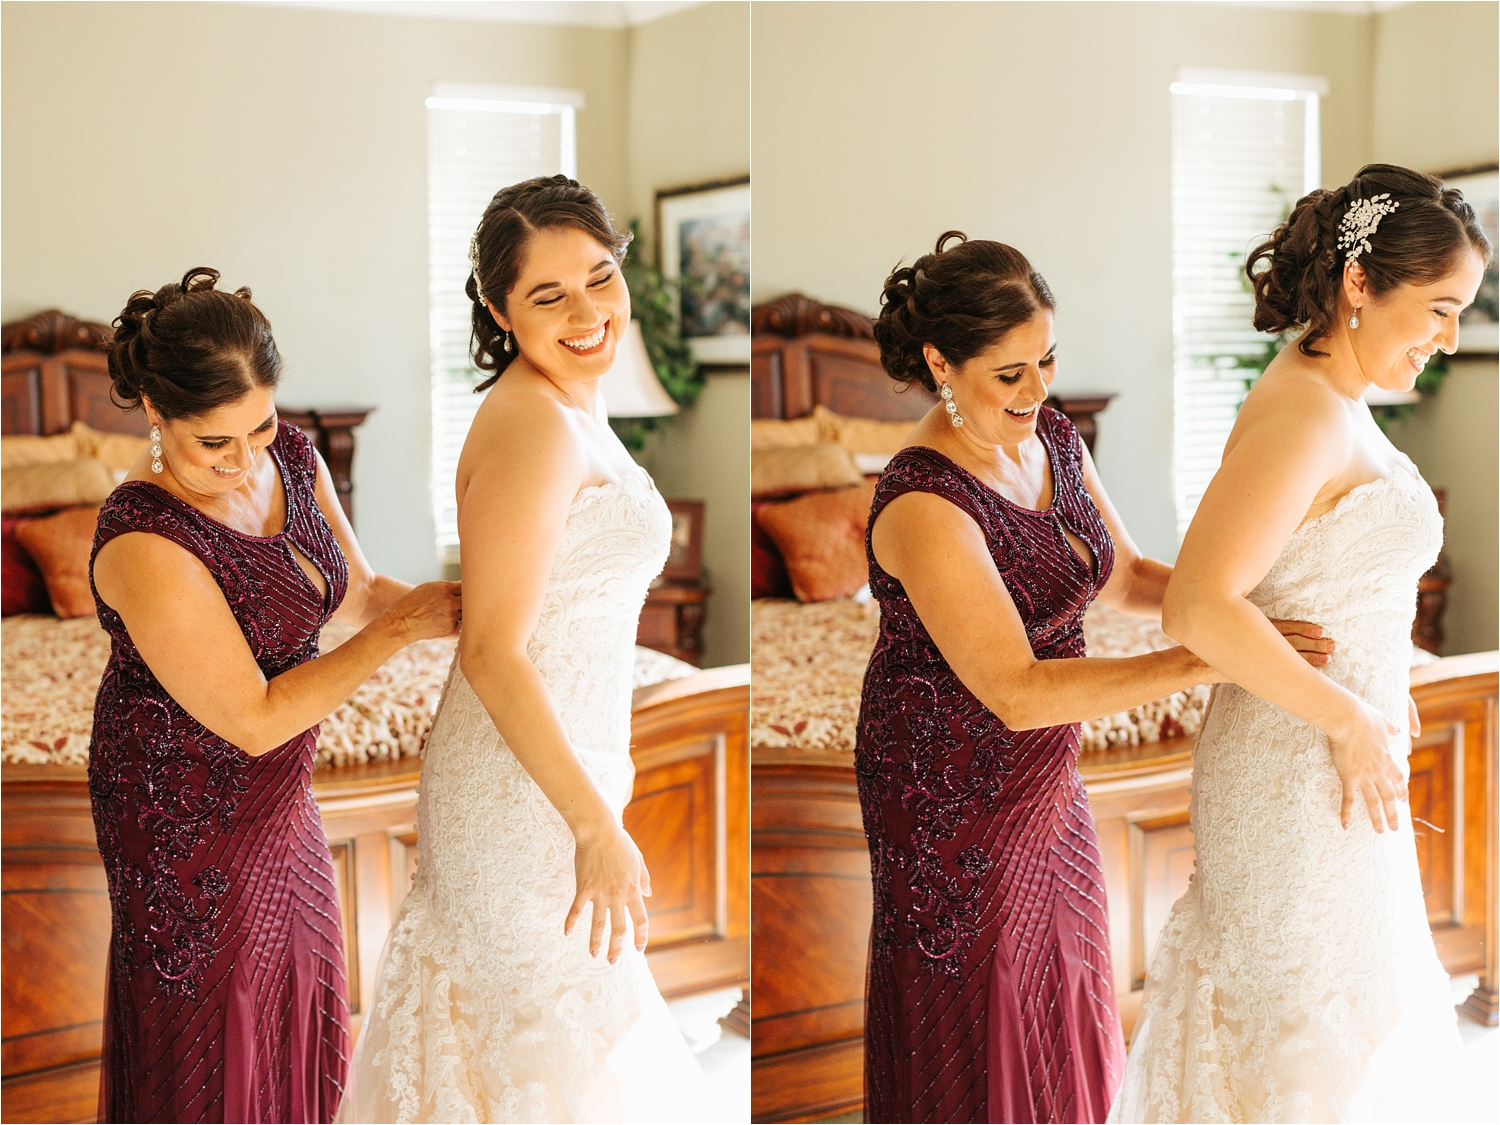 Mom helping Bride into wedding dress - https://brittneyhannonphotography.com